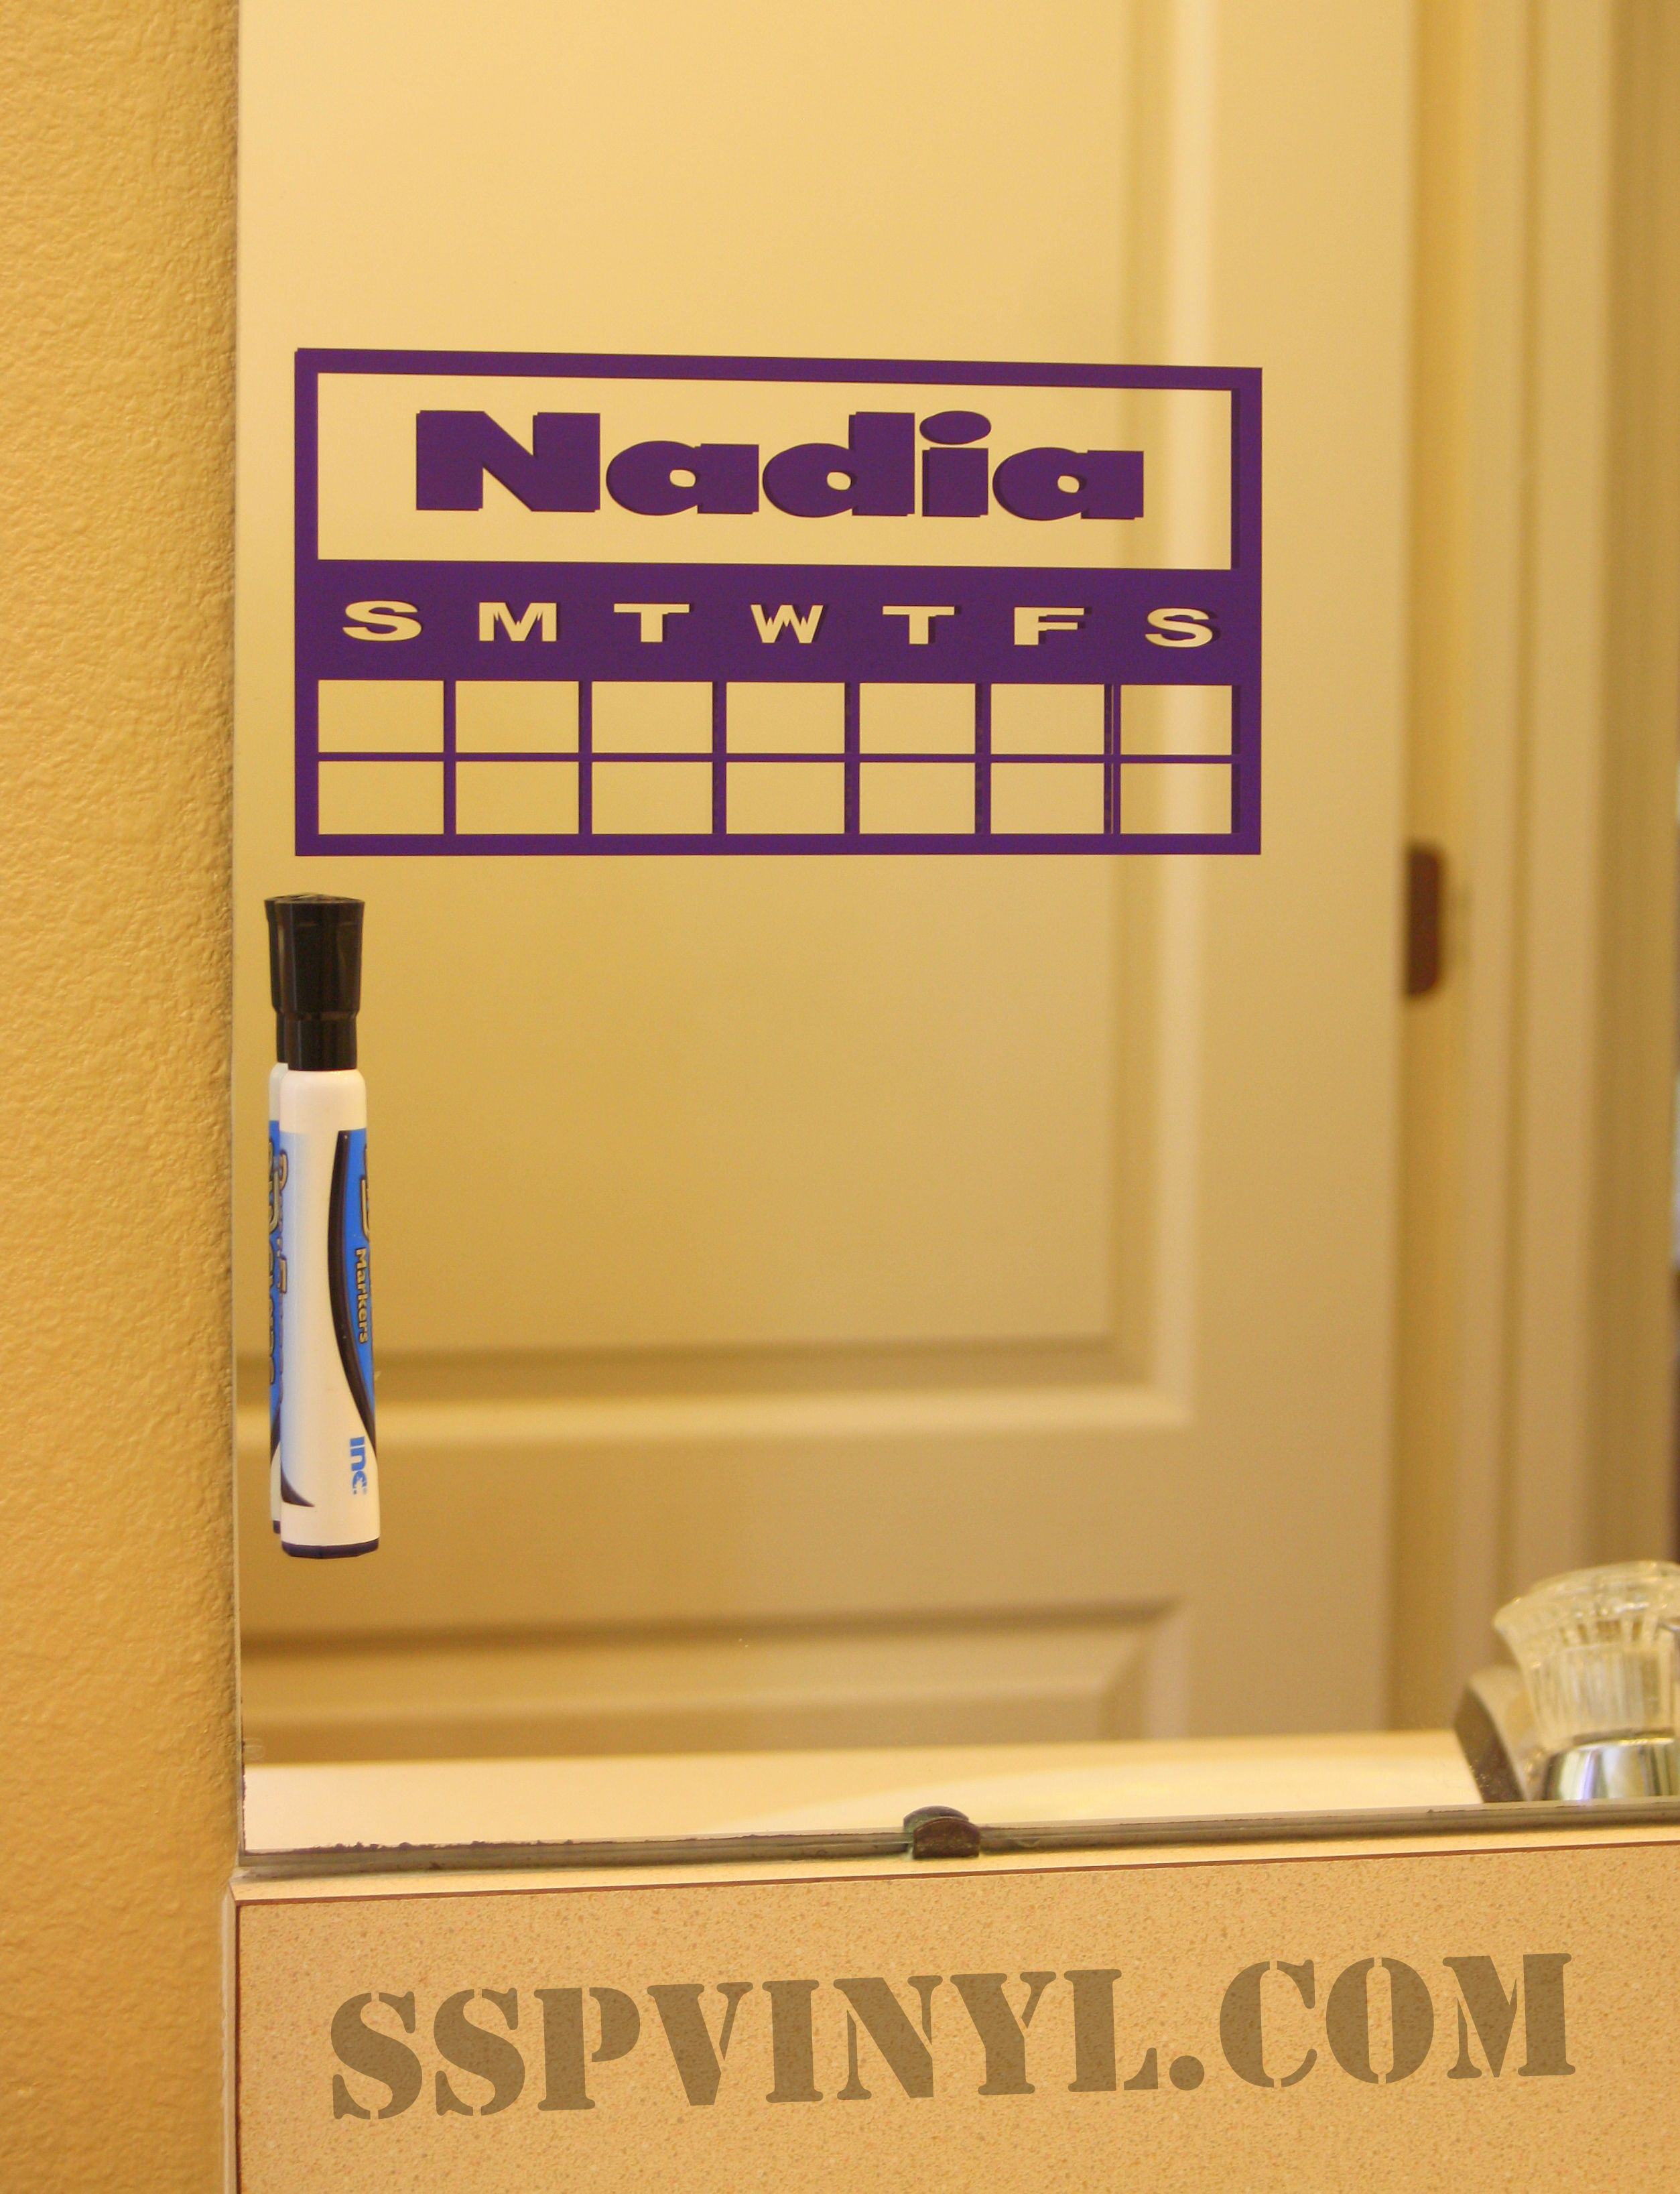 Teeth Brushing Charts That Stick To The Mirror In The Bathroom - How to make vinyl decals stick